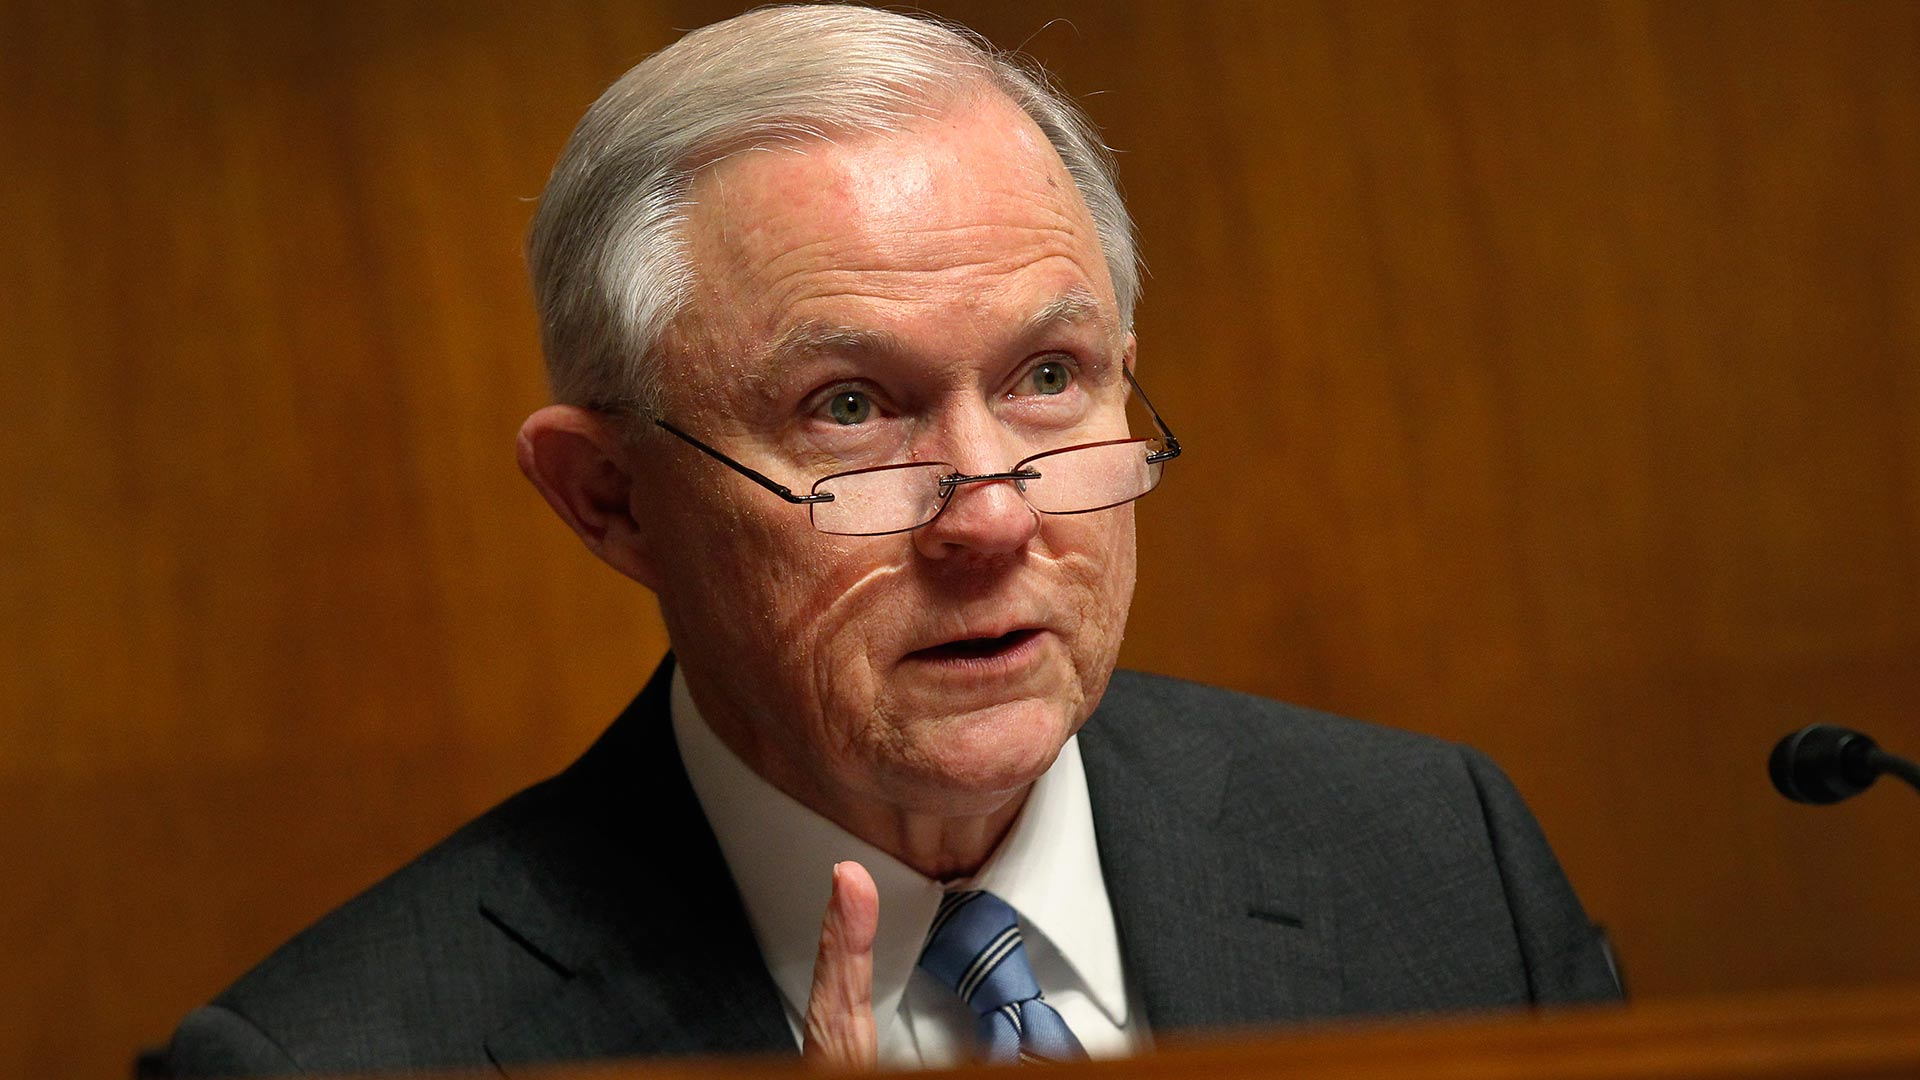 Then- Sen. Jeff Sessions during remarks before the Senate Subcommittee on Immigration and the National Interest, in Washington, D.C., Jan. 20, 2016.